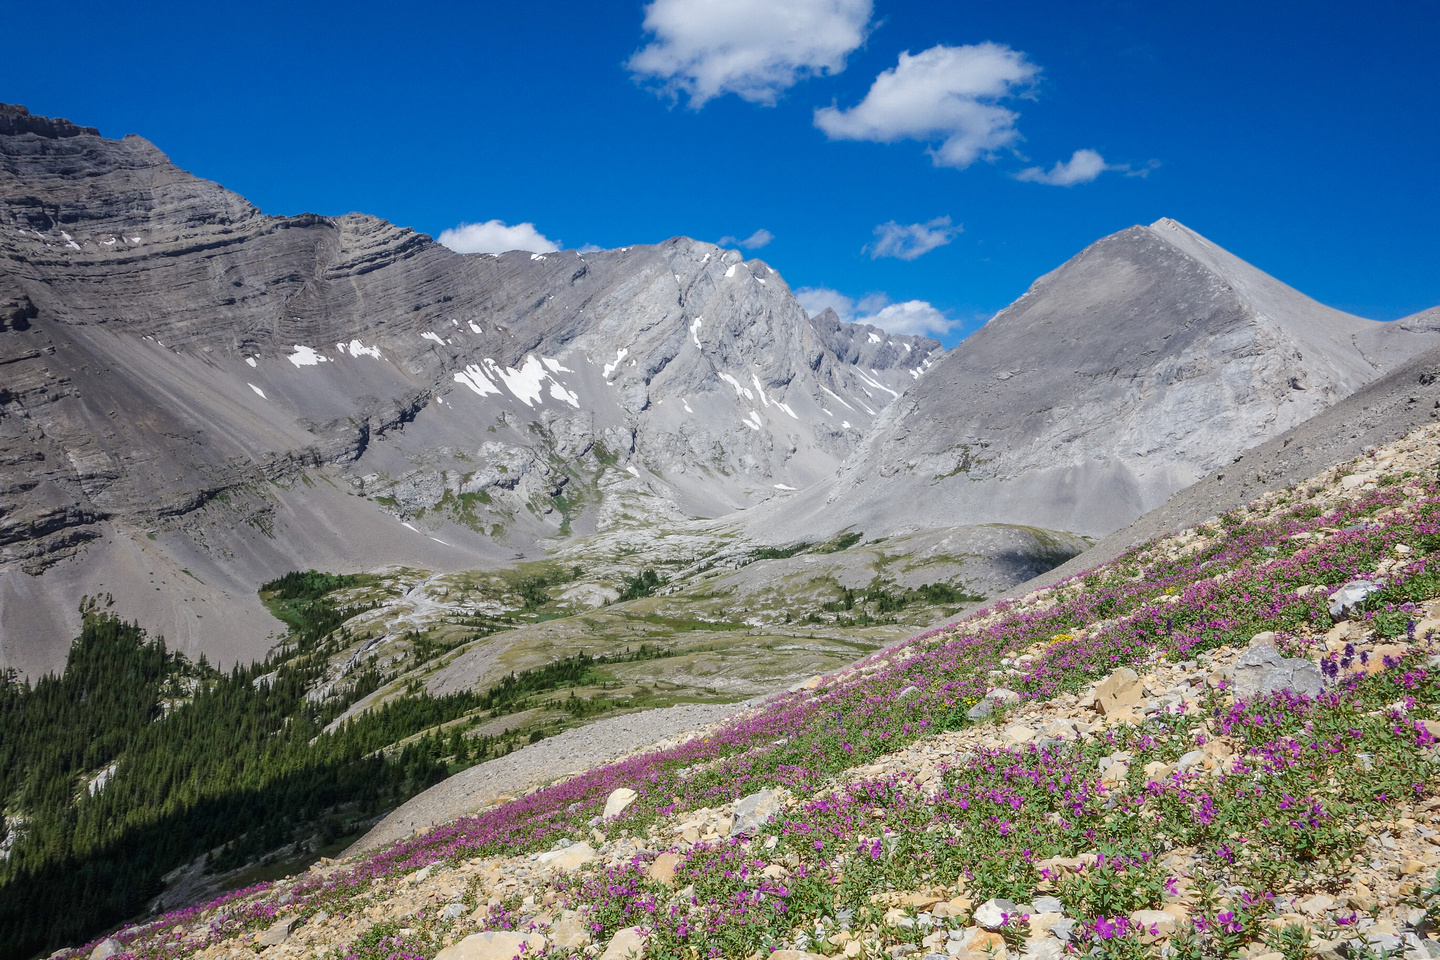 Lots of wildflowers on the scree slopes under the west face. Looking towards James Walker.